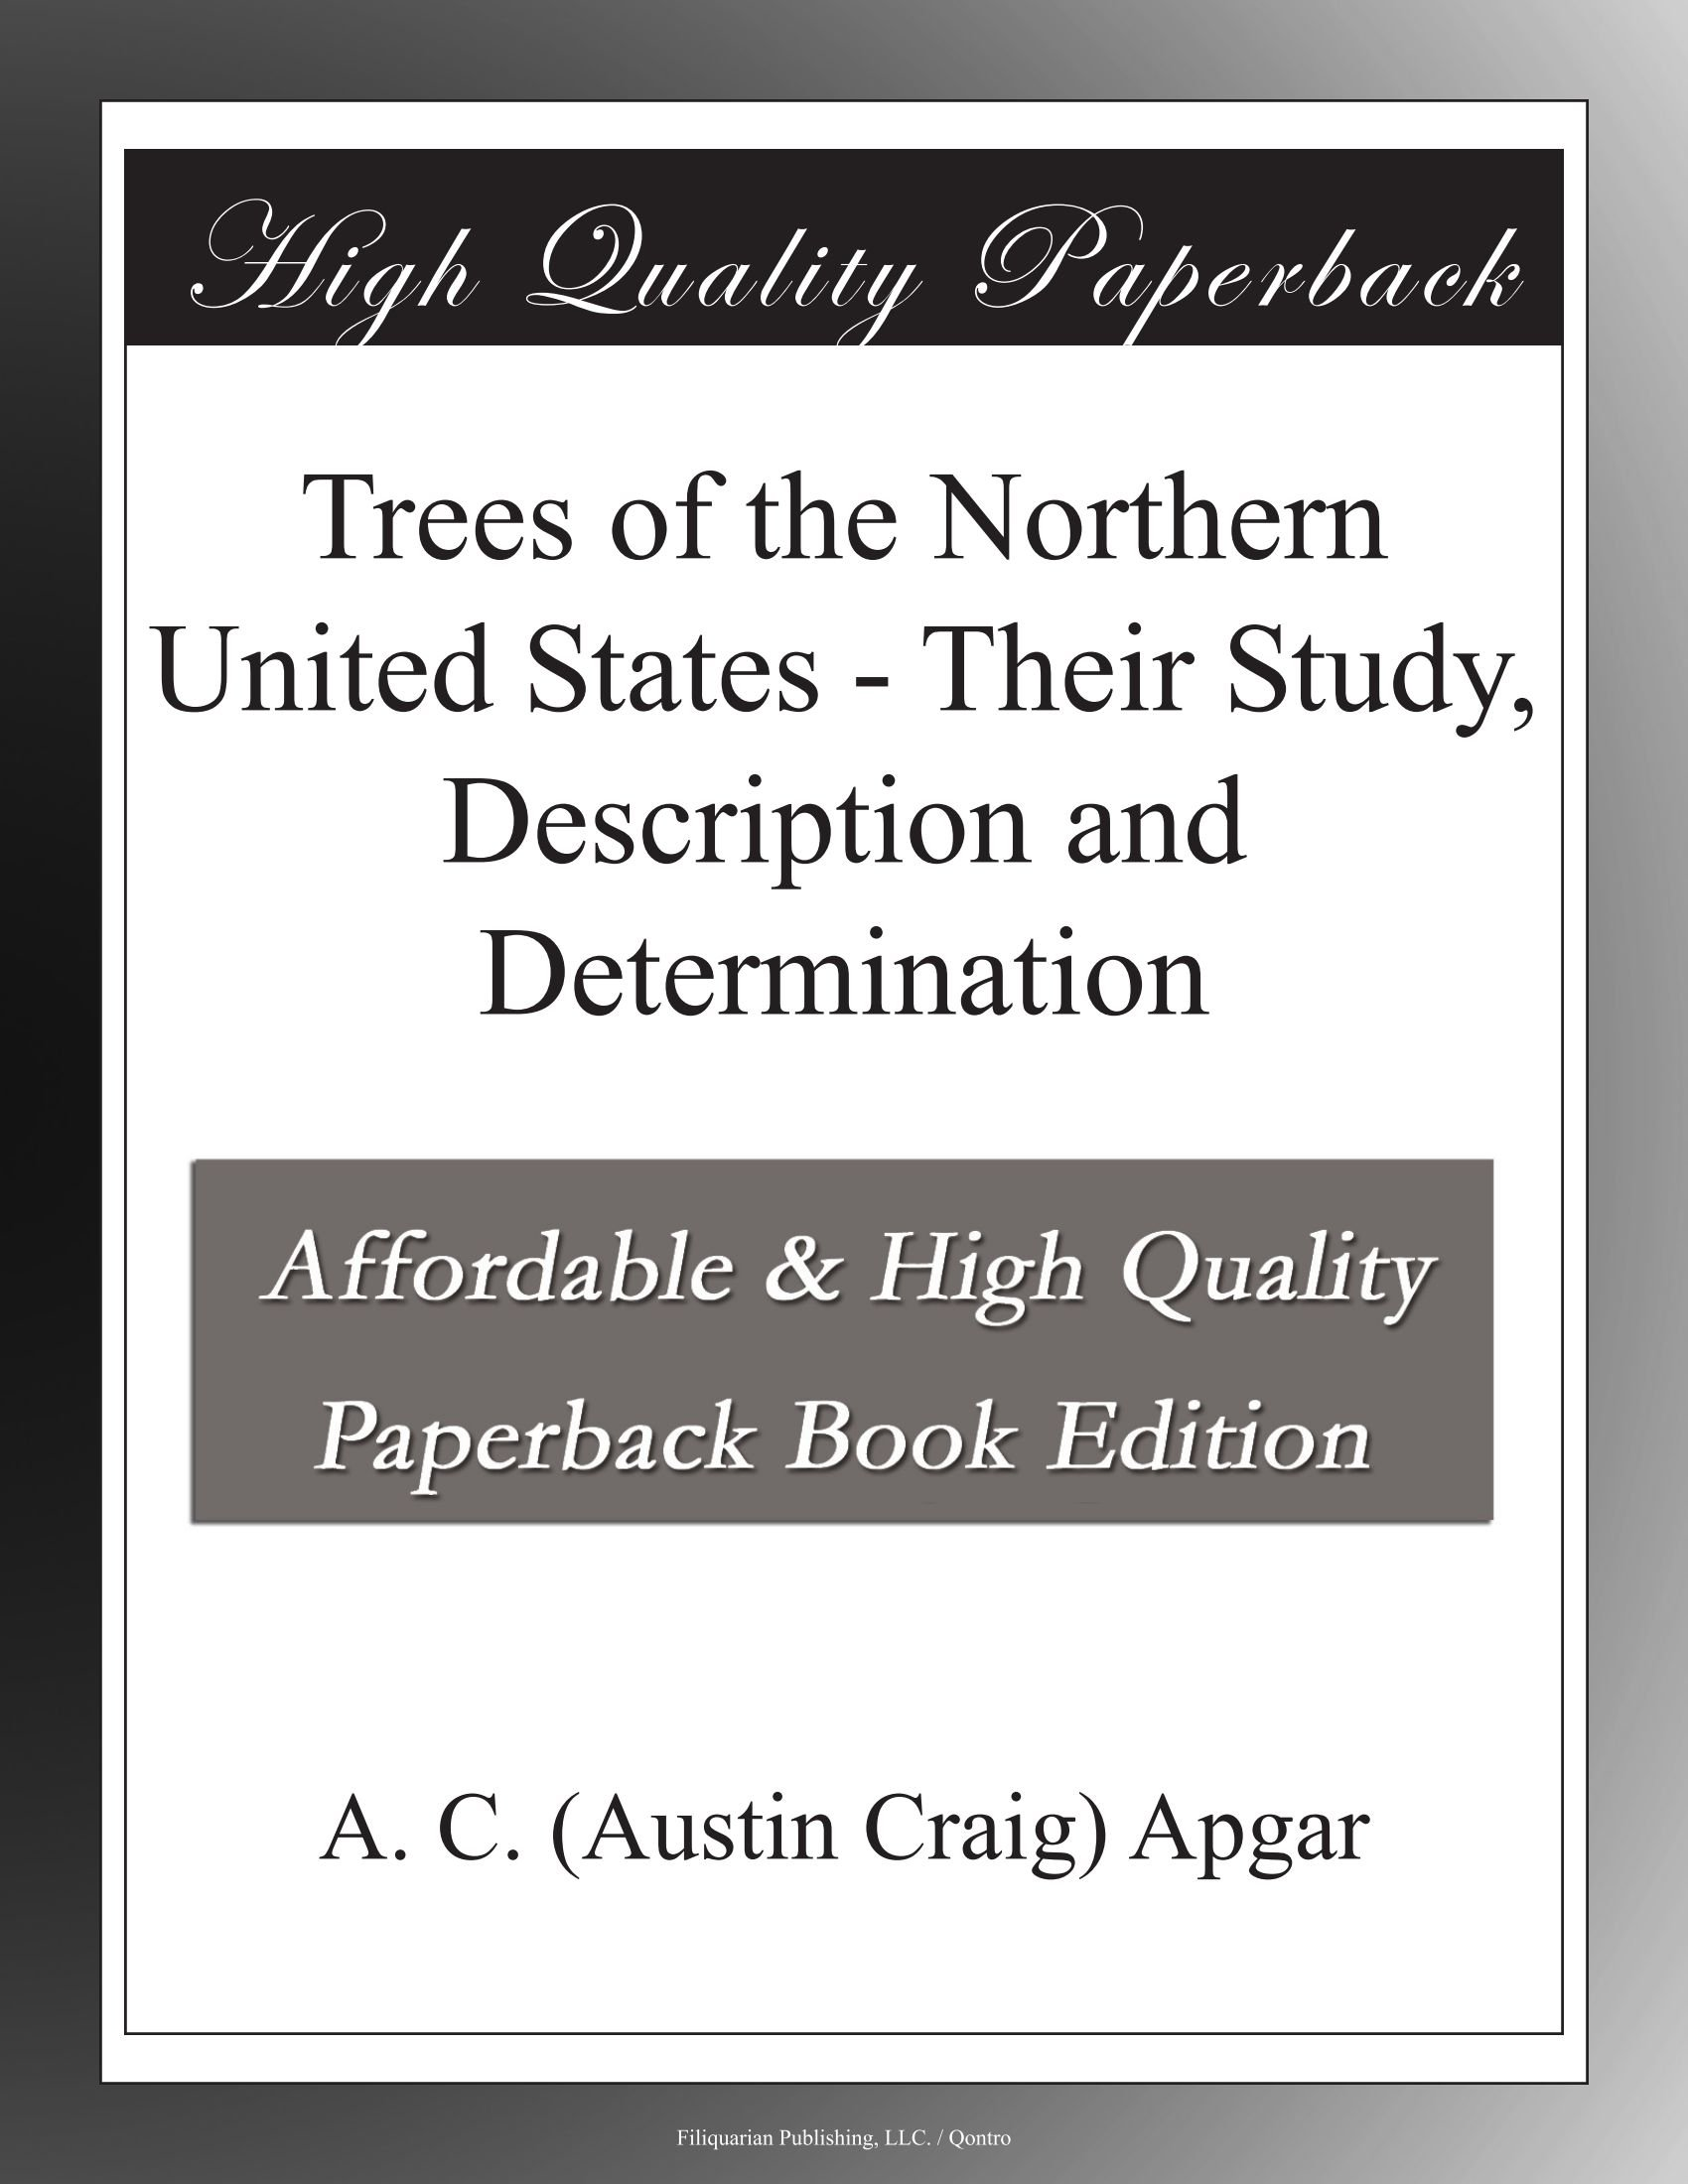 Trees of the Northern United States - Their Study, Description and Determination pdf